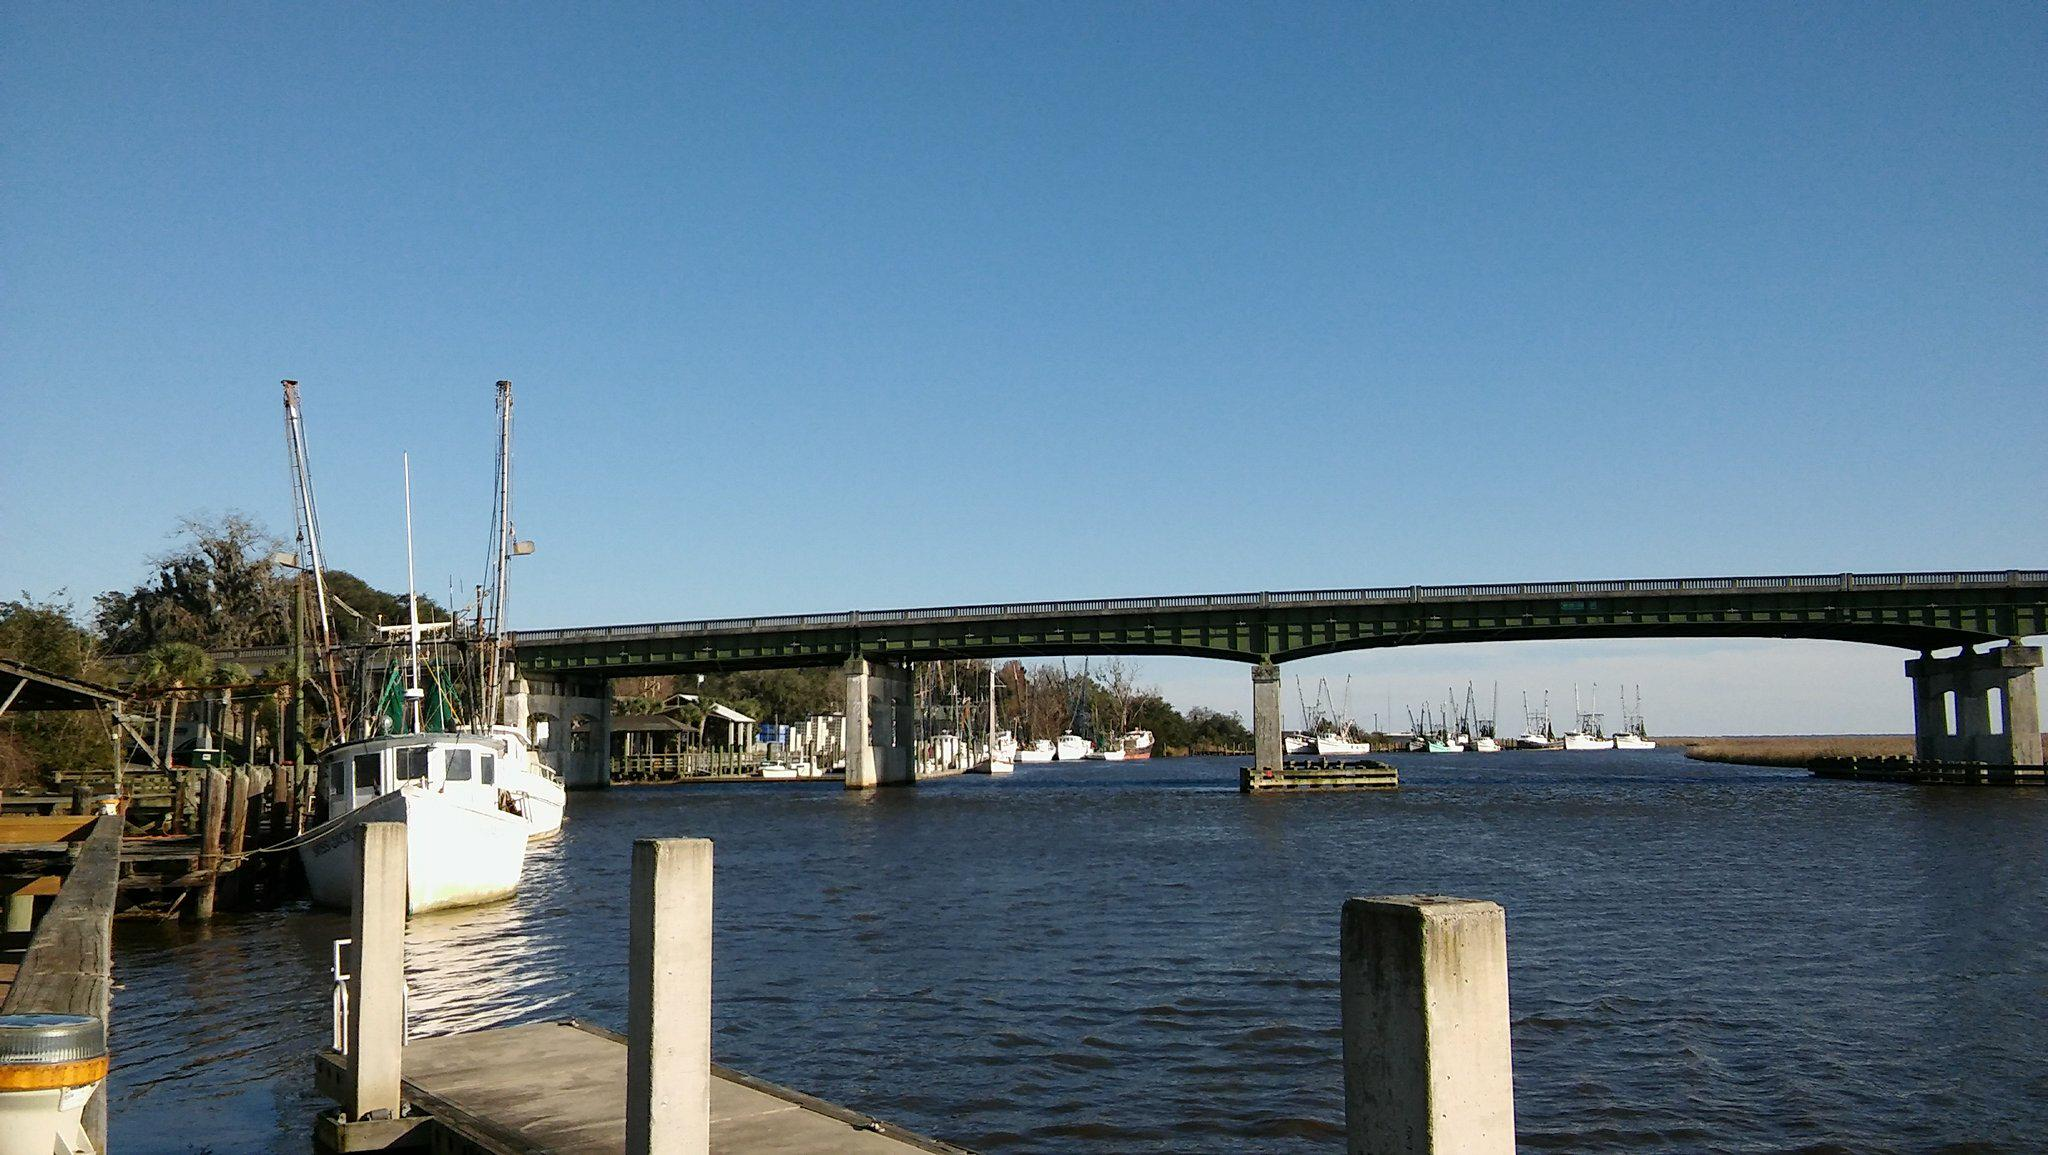 The West side of the Darien Bridge